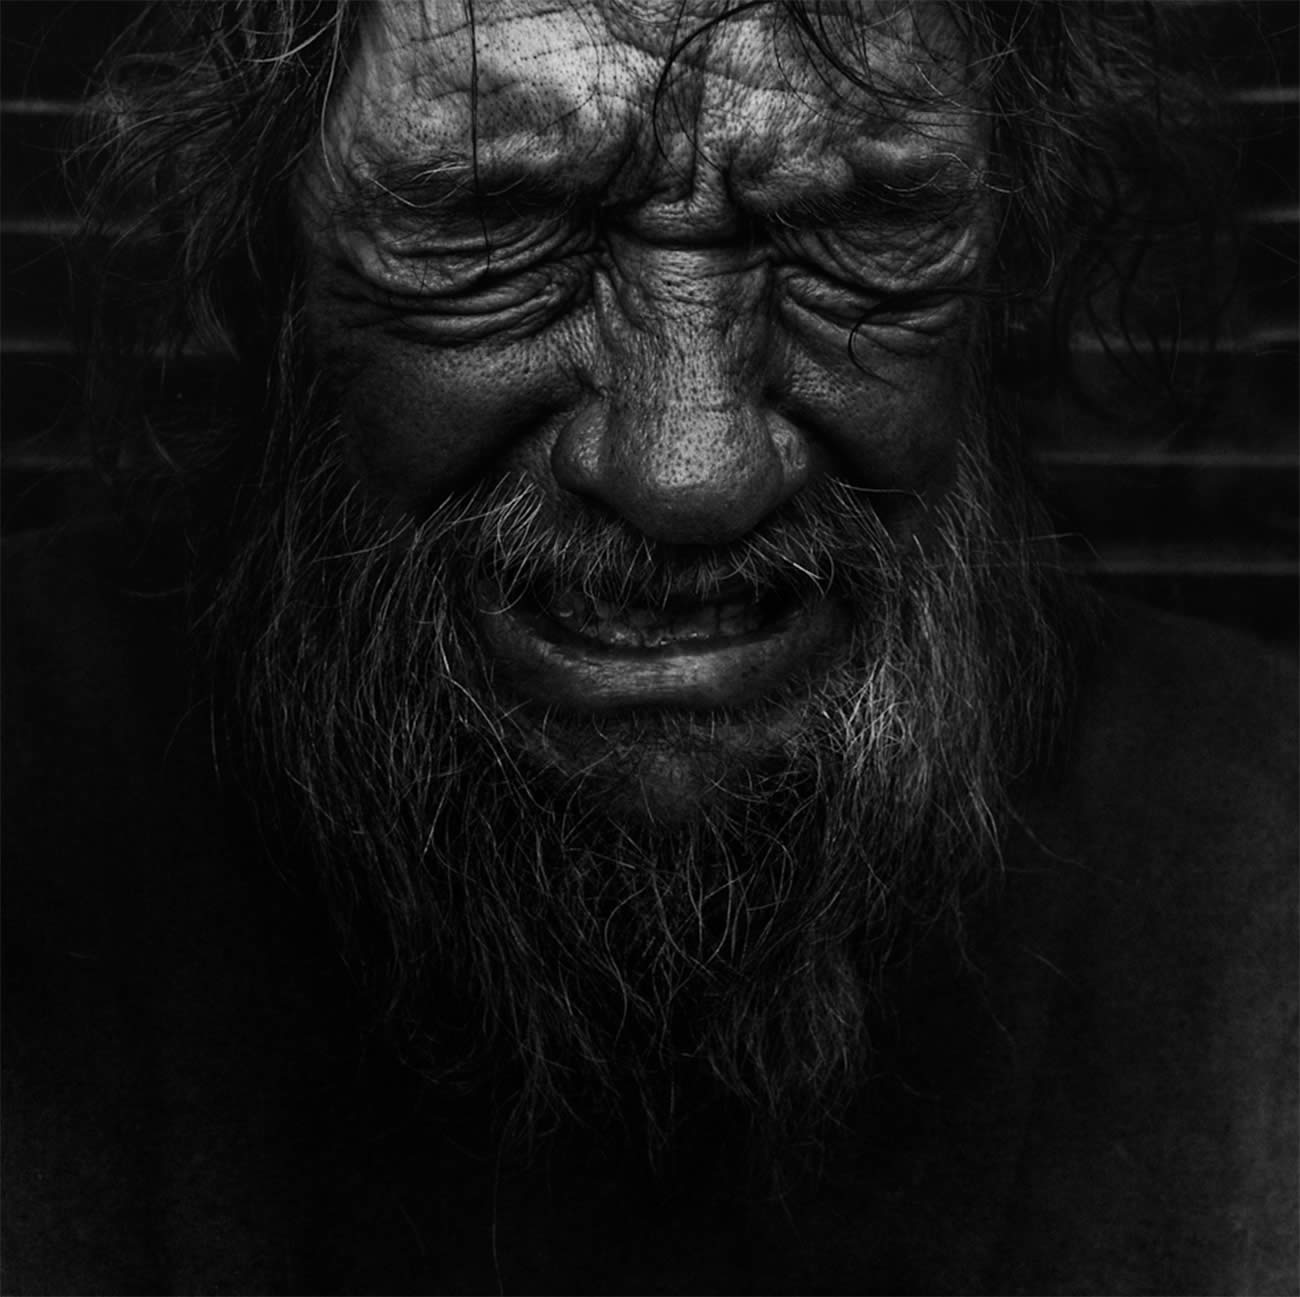 man suffering, crying, street photography by lee jeffries